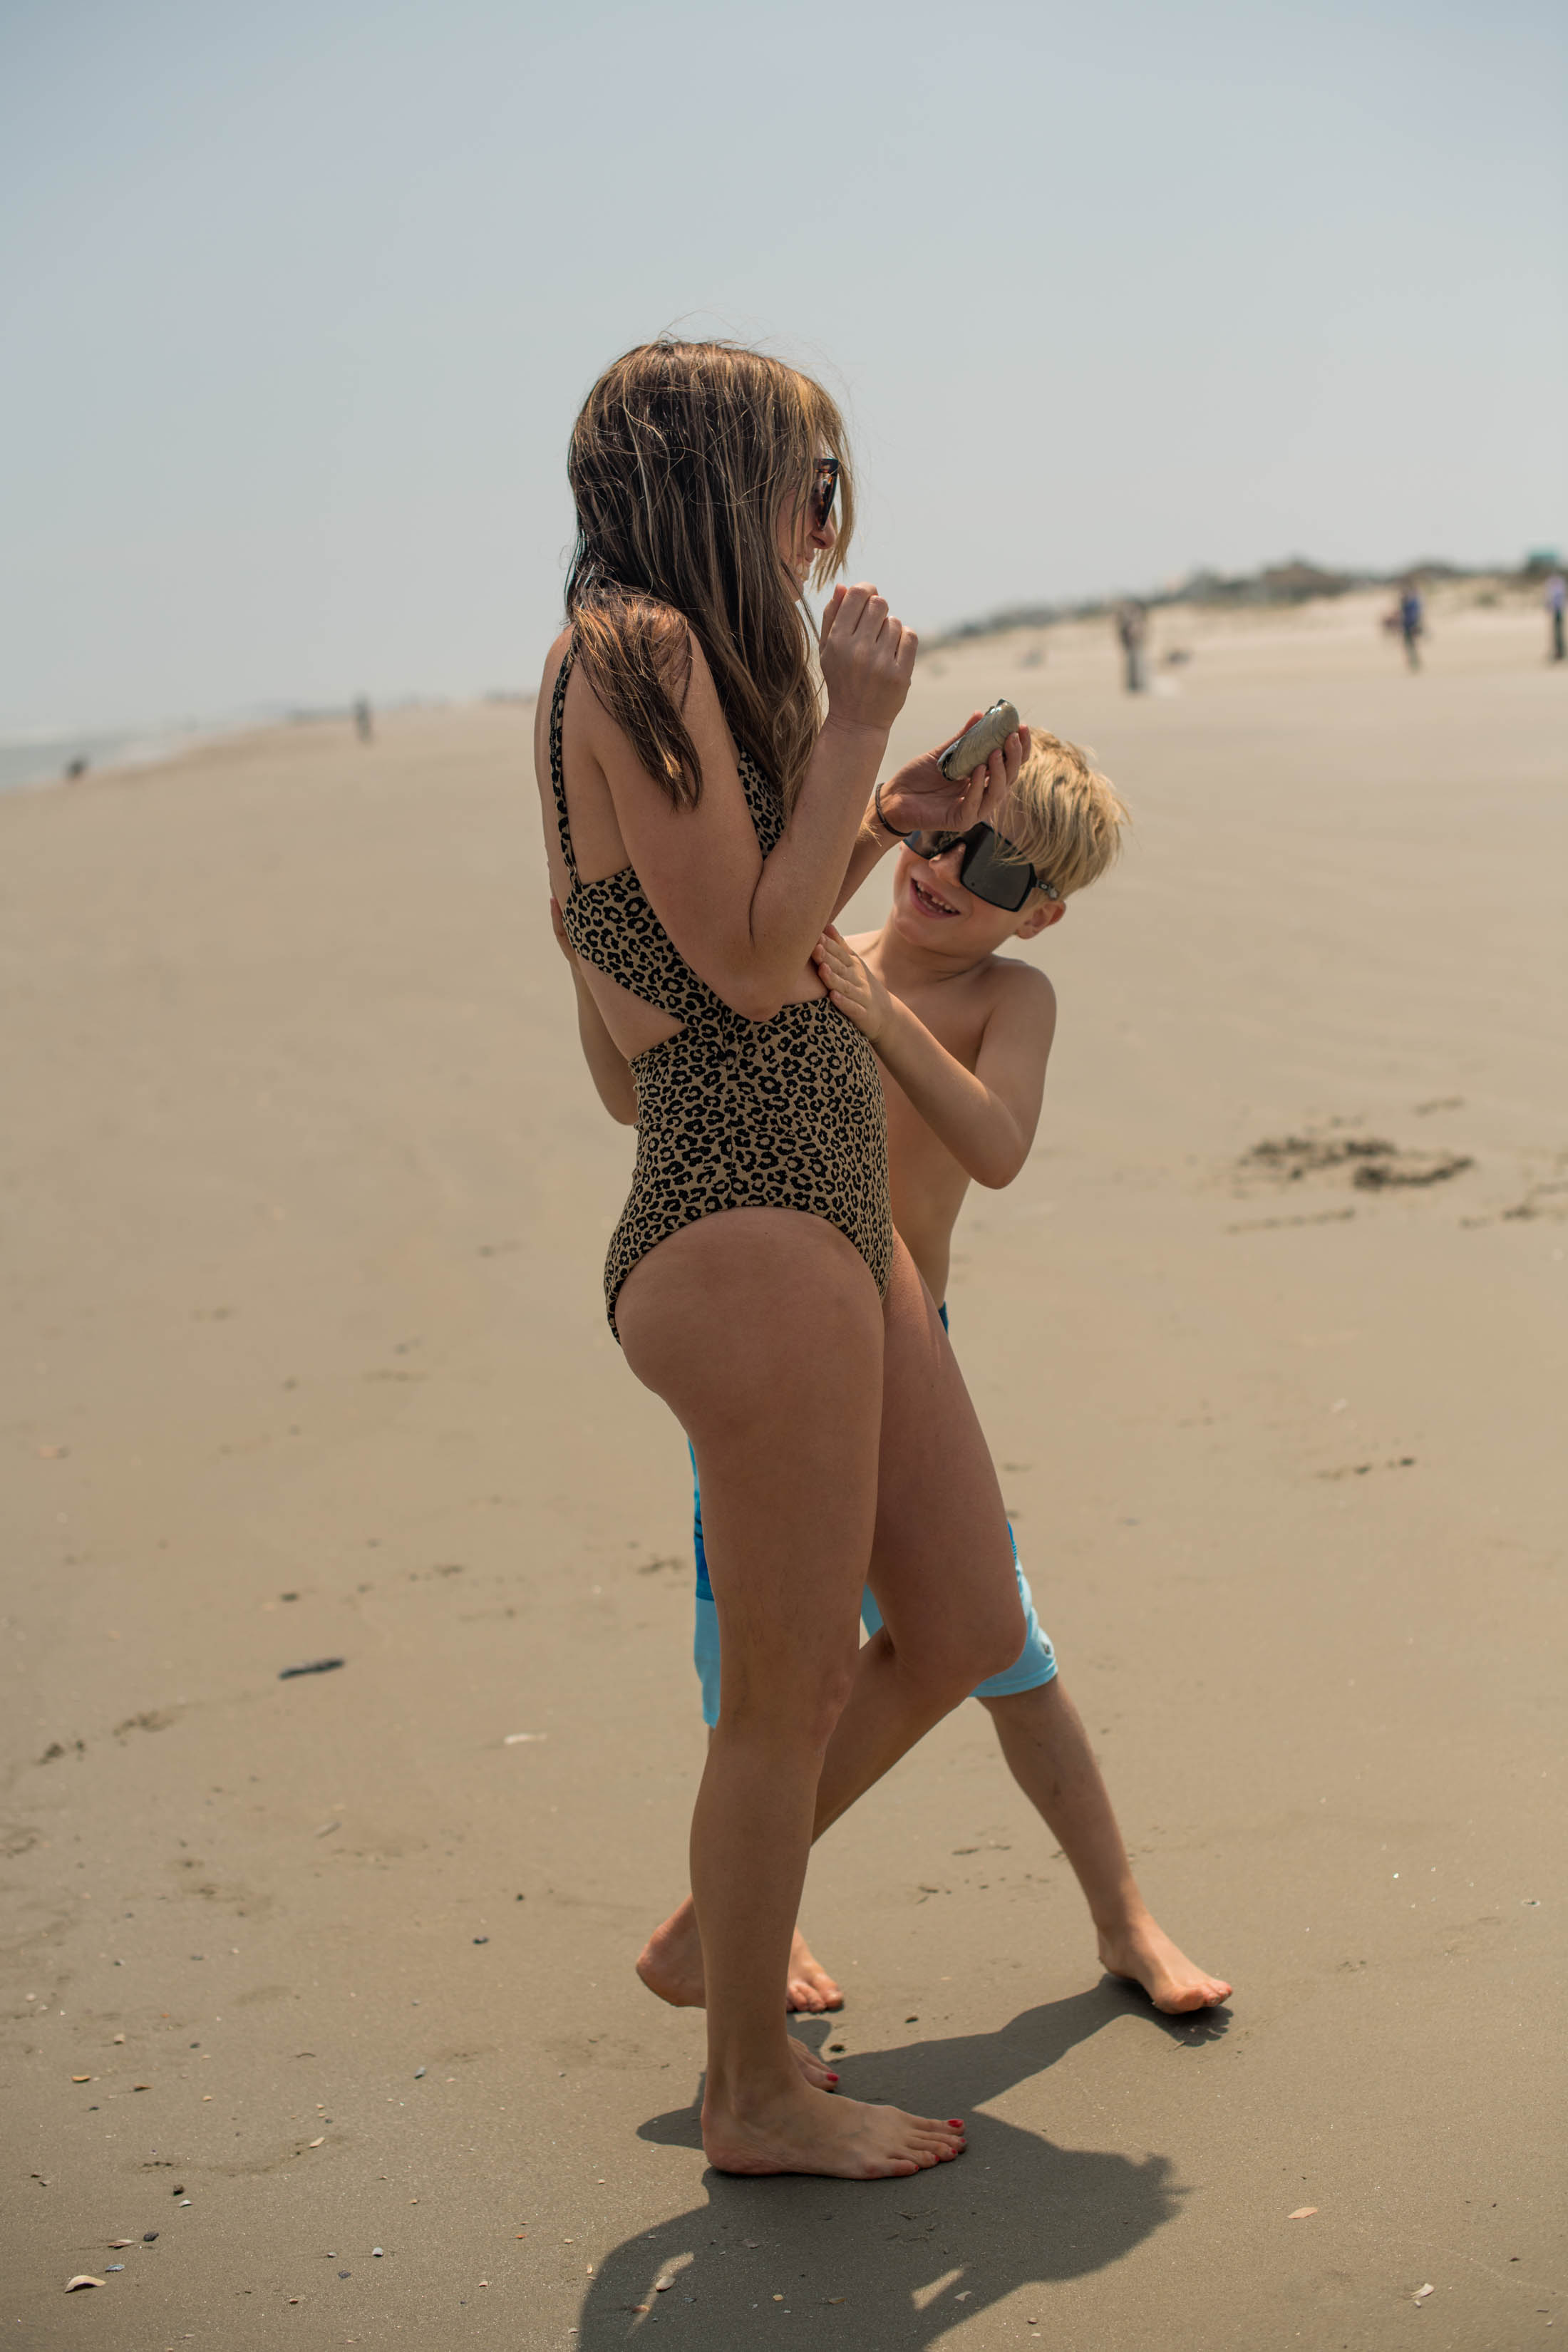 The 2019 summer fashion trend that's timely & classic? Leopard print swimsuit. We heart this sustainable swimwear brand & found more bathing suits we love.